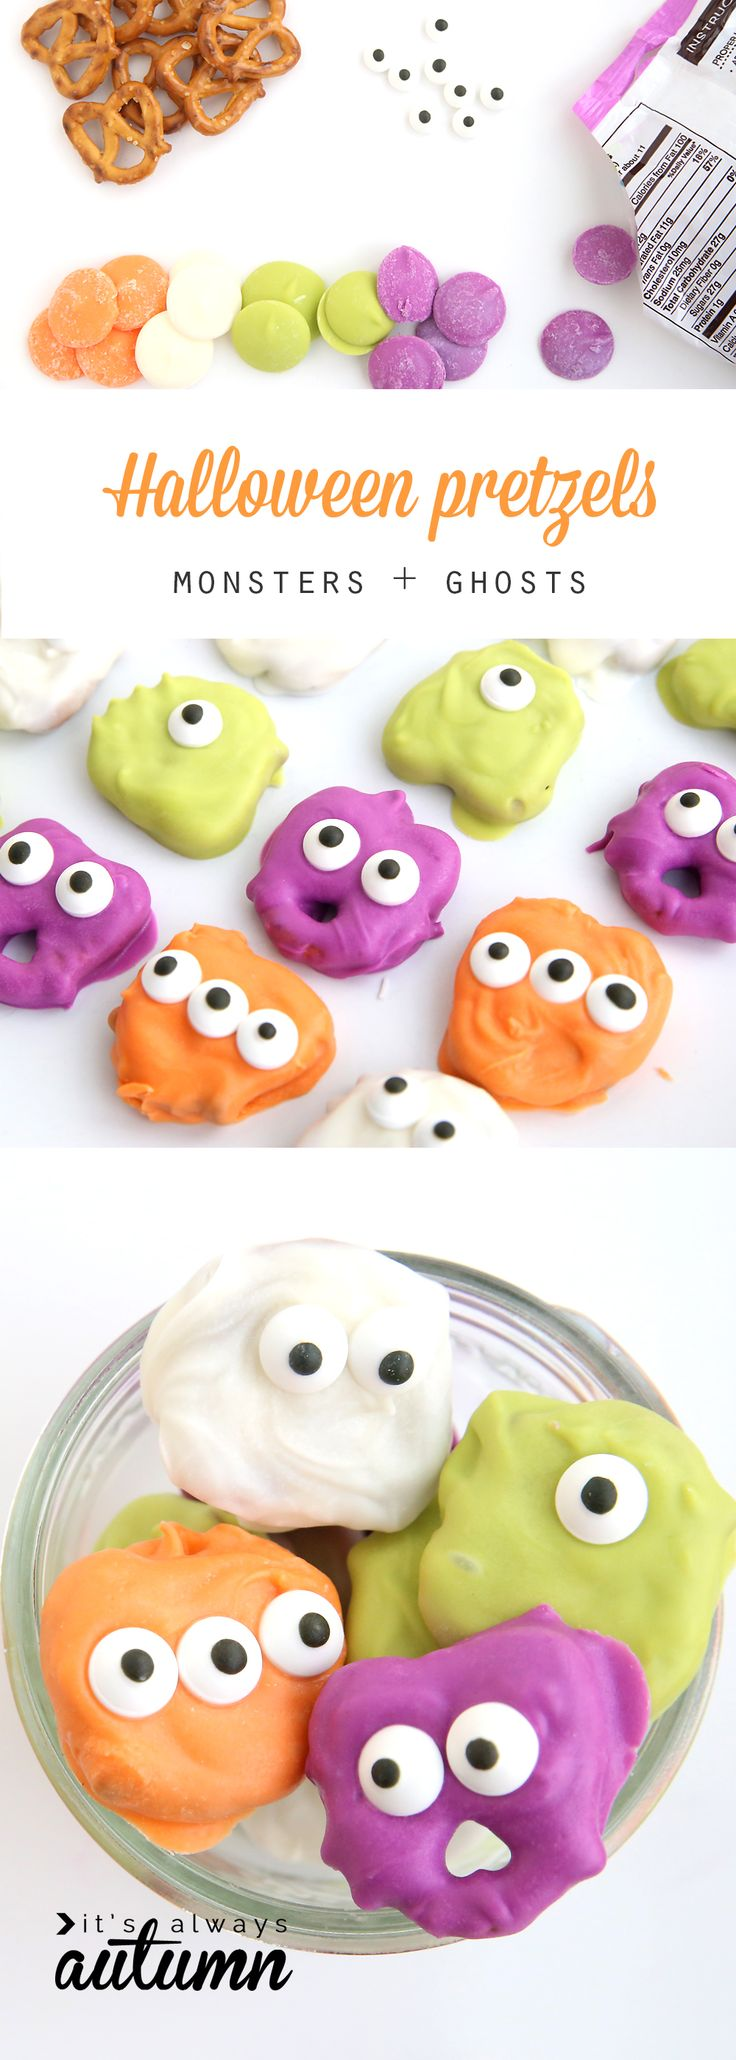 pretzel monsters and ghosts for halloween fun easy treat to make with - Easy Kids Halloween Crafts Ideas